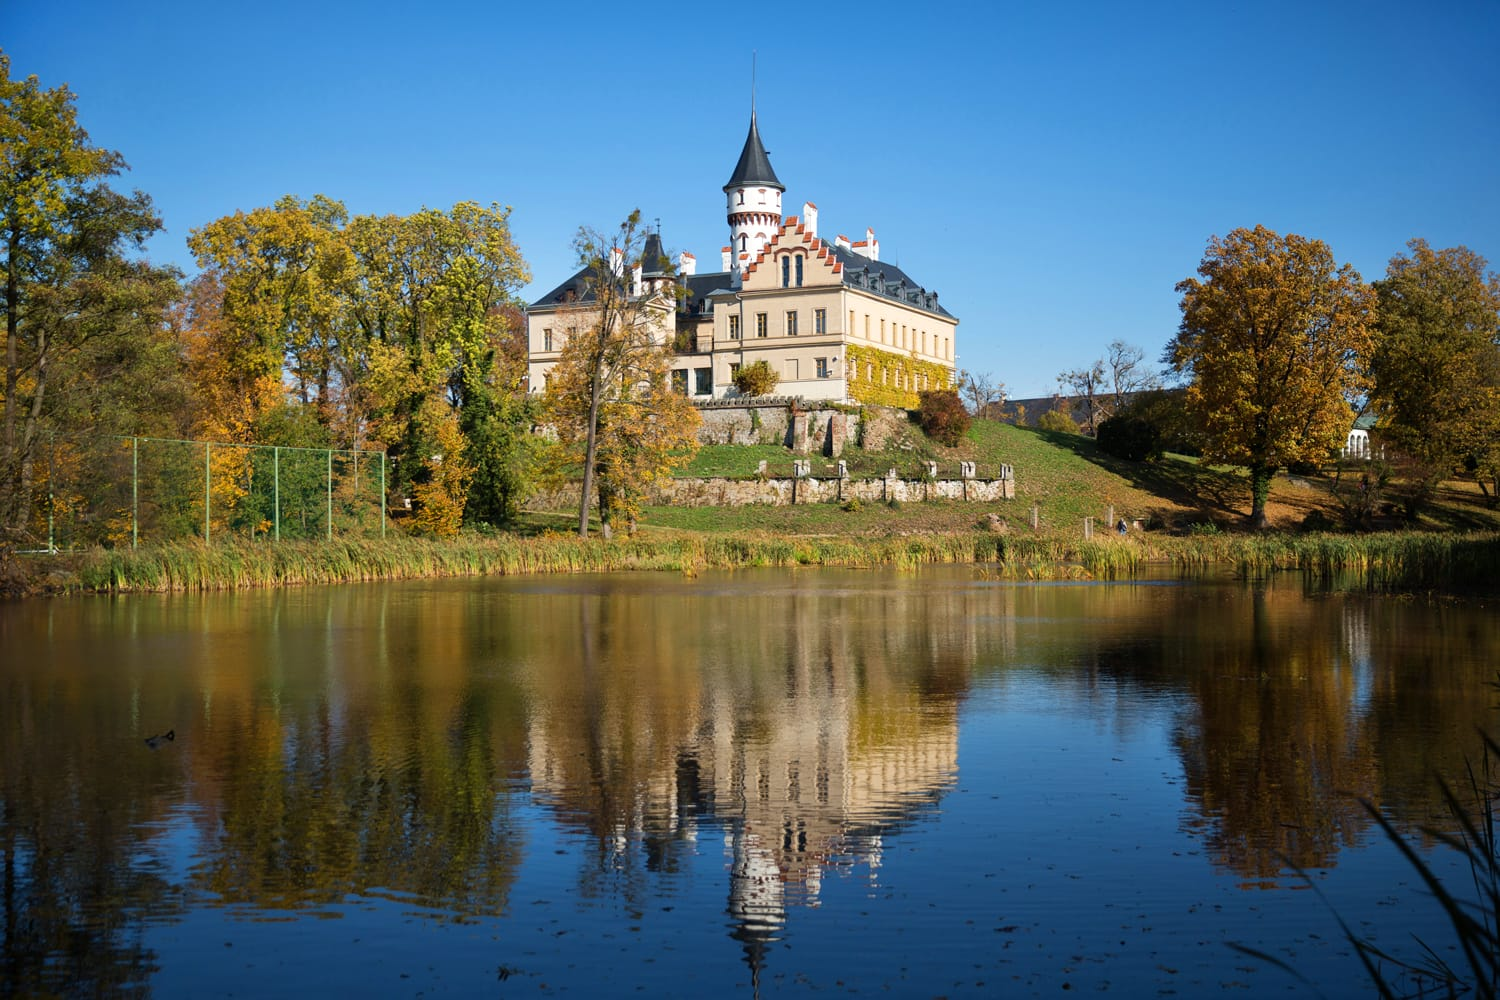 Castle Radun in the Czech Republic